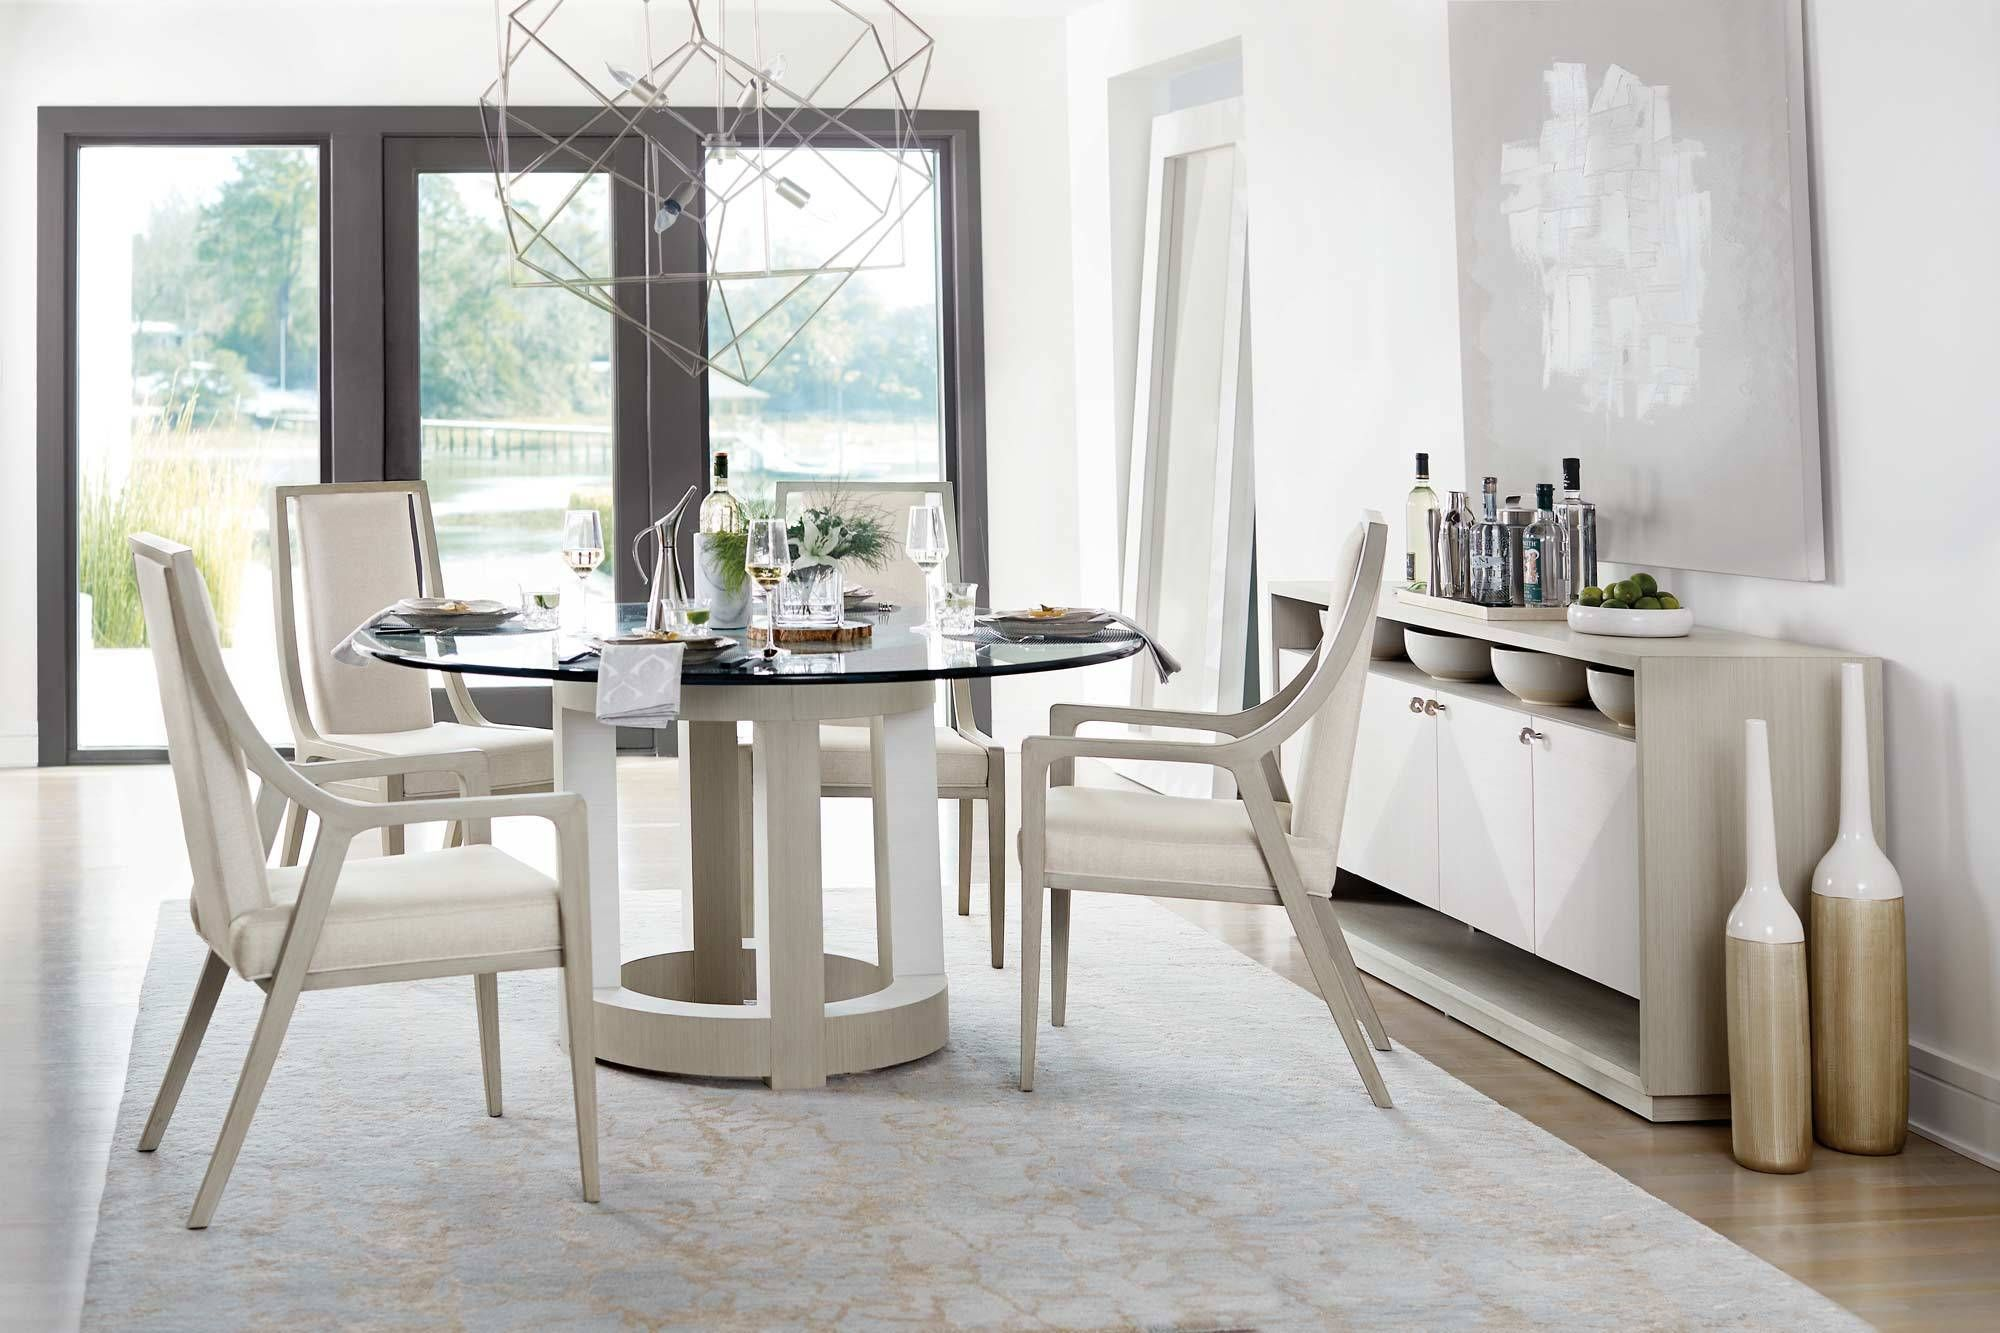 Maxwell White 1 8m Marble Dining Table Black Legs Dining Table